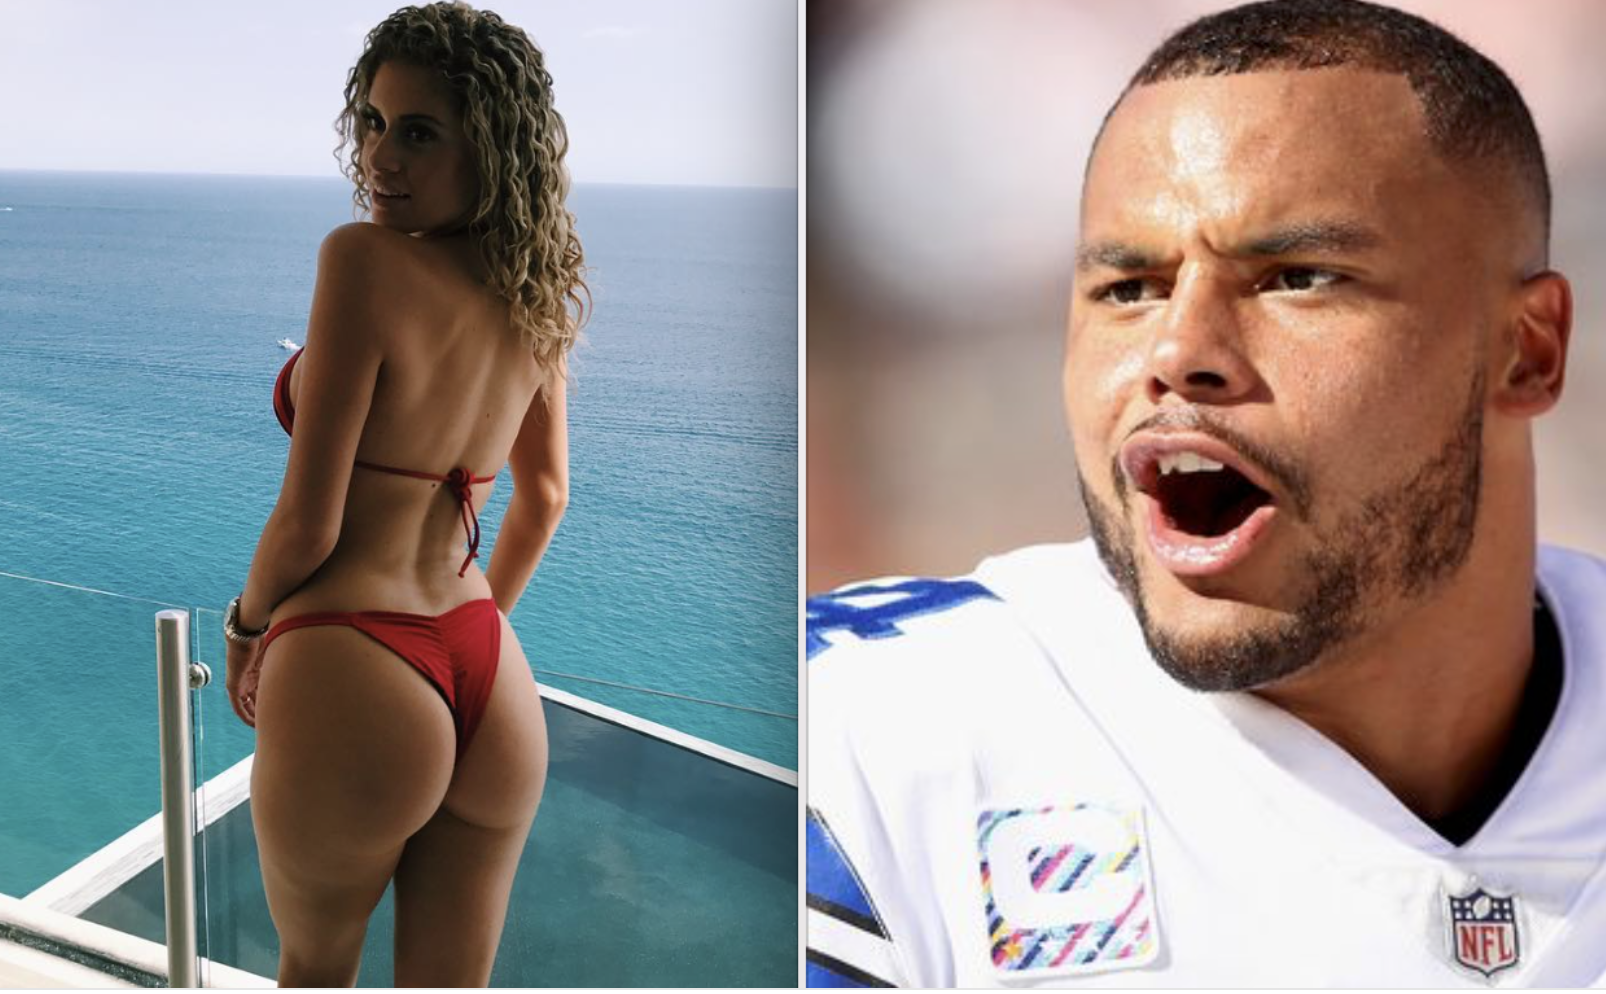 Dak Prescott's Ex Yasmine Nicole Opens Up About Their Relationship On Her Instagram Stories